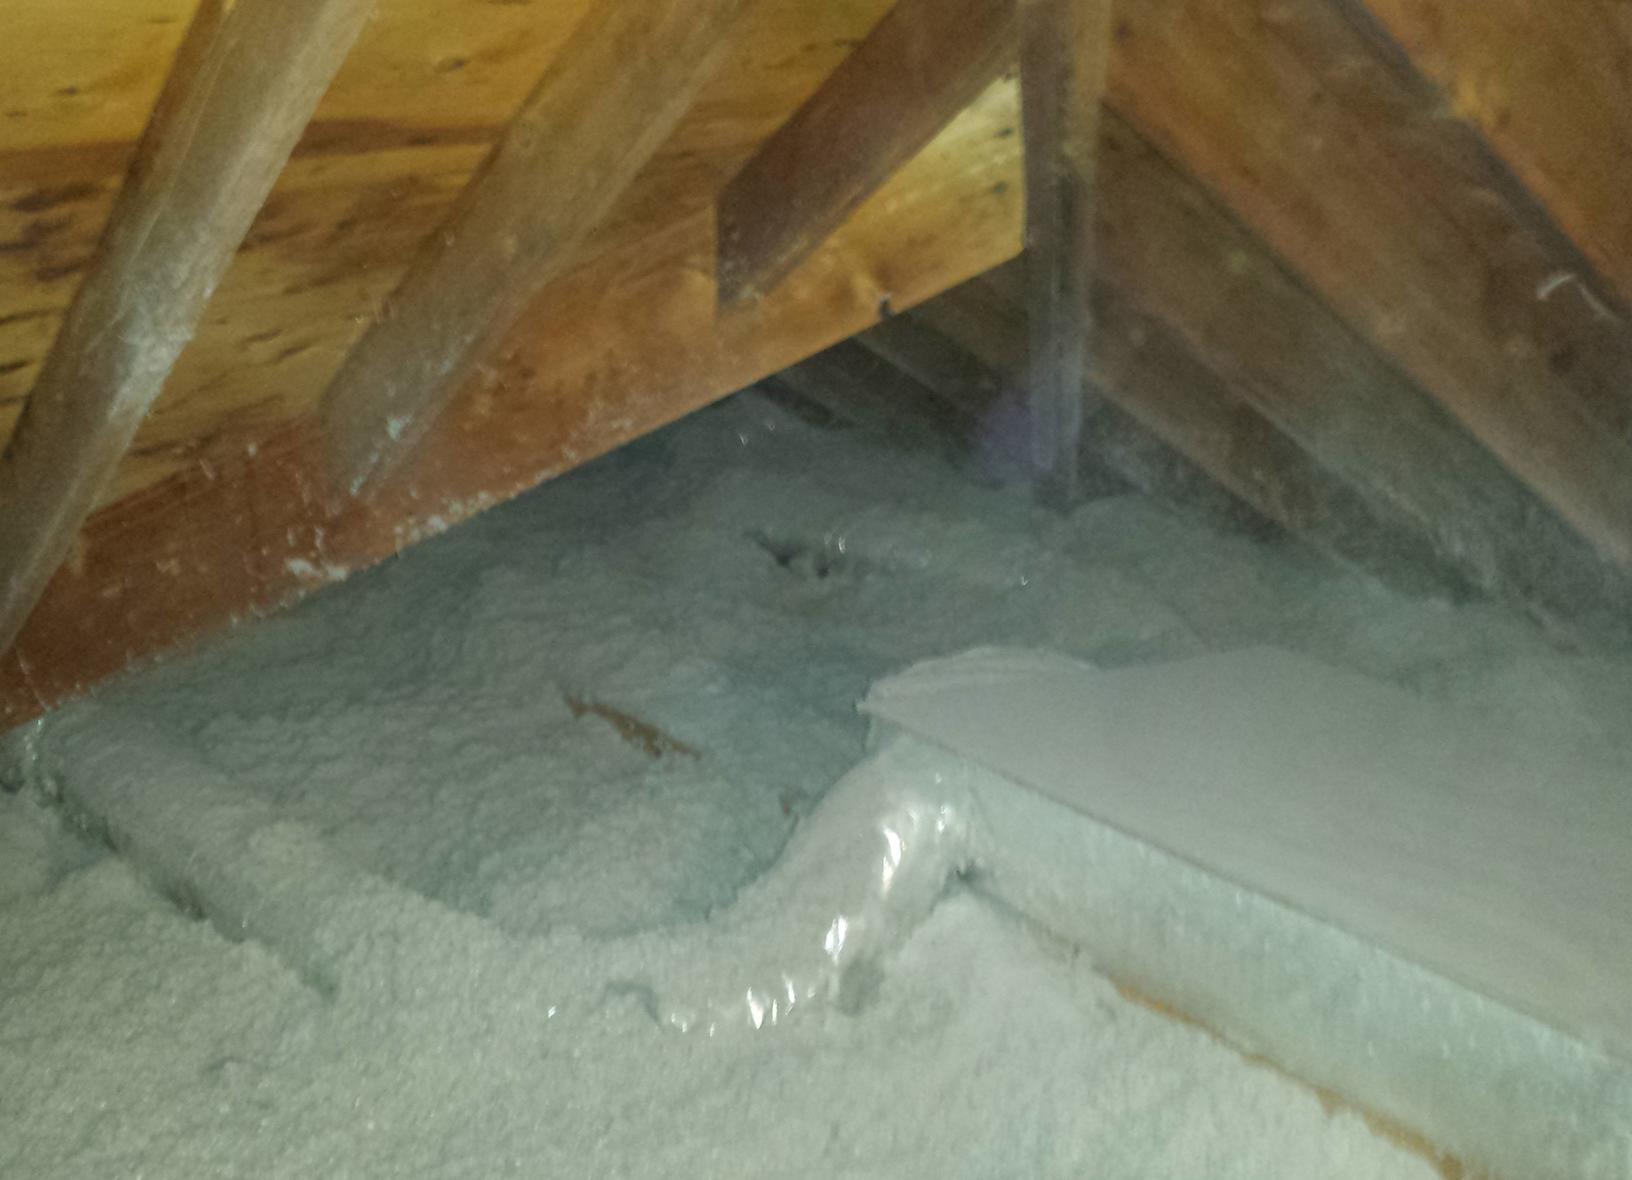 TAP insulation in Jackson, NJ - After Photo